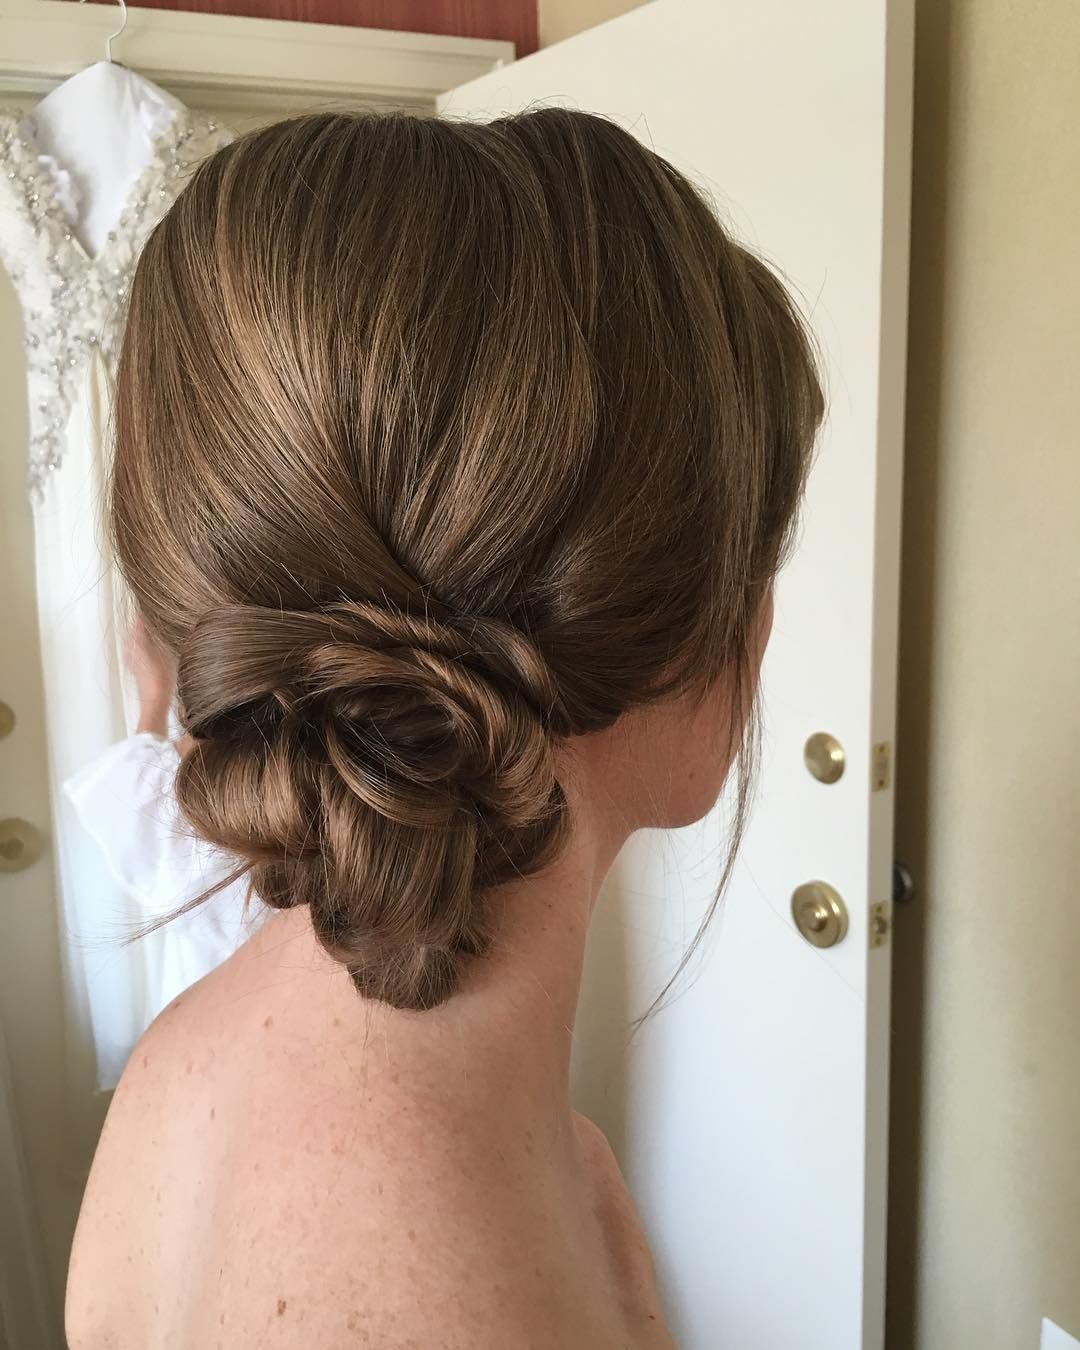 38 Flower Shaped Hairstyles For Special Occasions #lowsidebuns